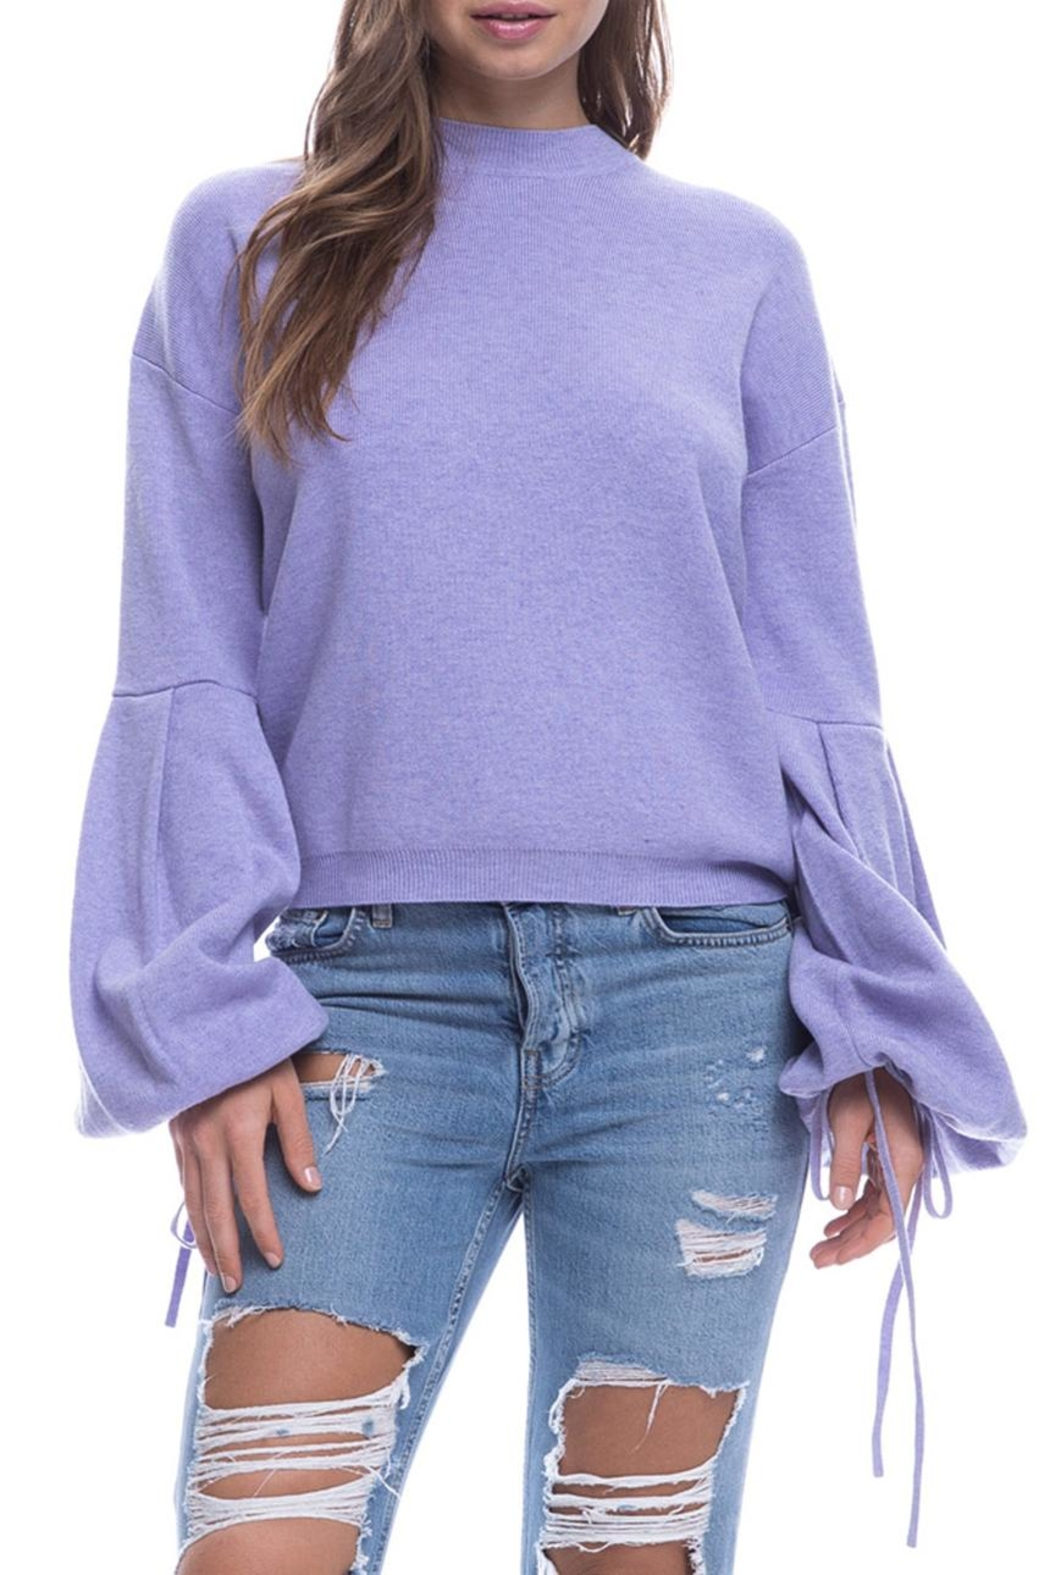 9dcac064cfee4 After Market Large Sleeve Sweater from New York by Dor L Dor ...